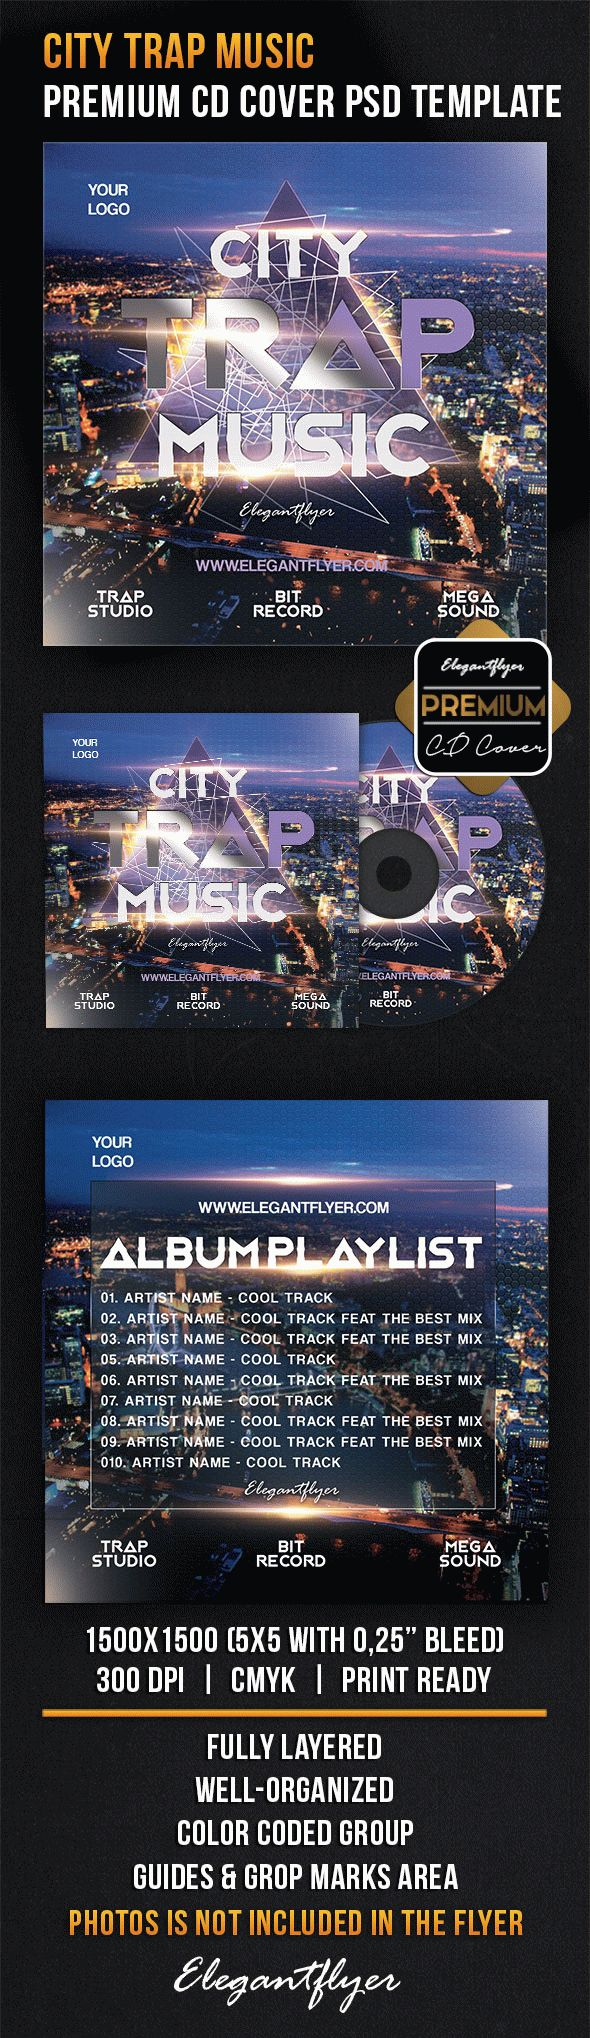 City Trap Music – Premium CD Cover PSD Template